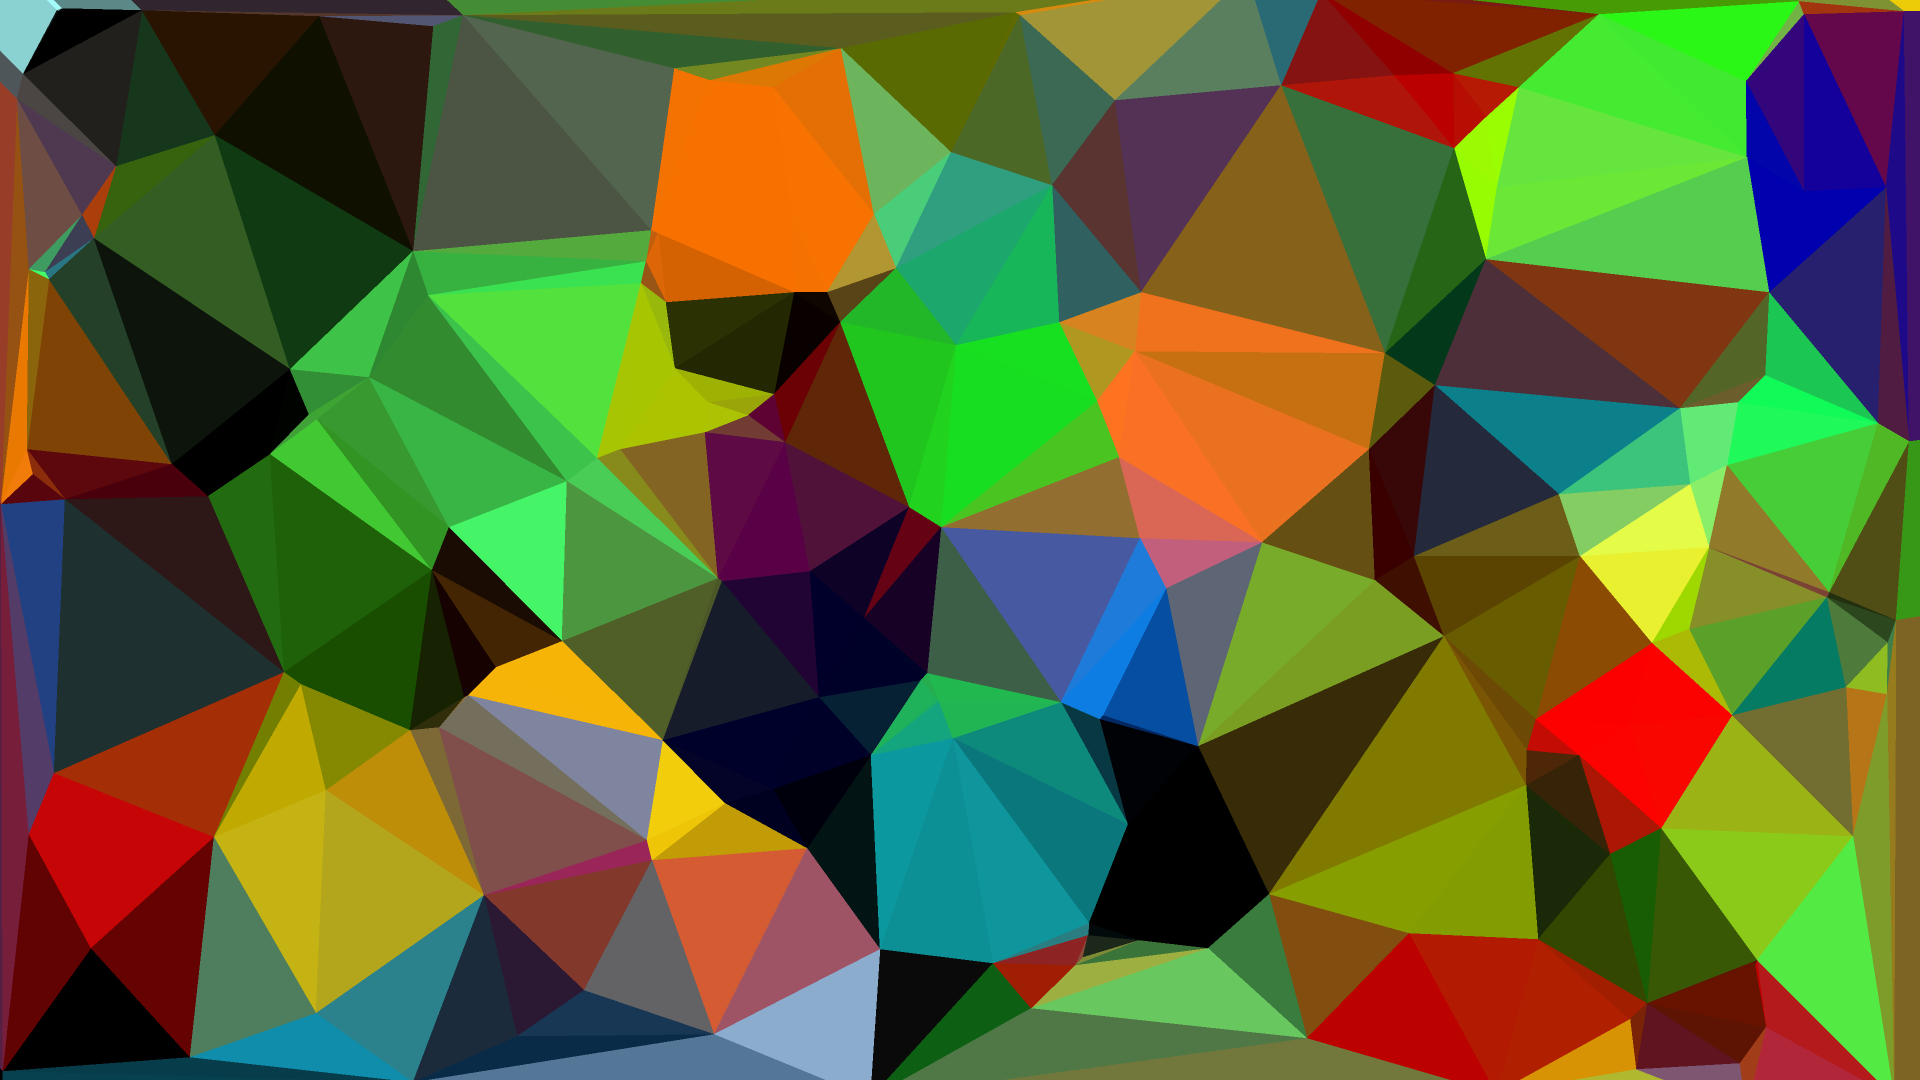 Wallpaper geometric color 34 1080p hd by airworldking on - Geometric wallpaper colorful ...